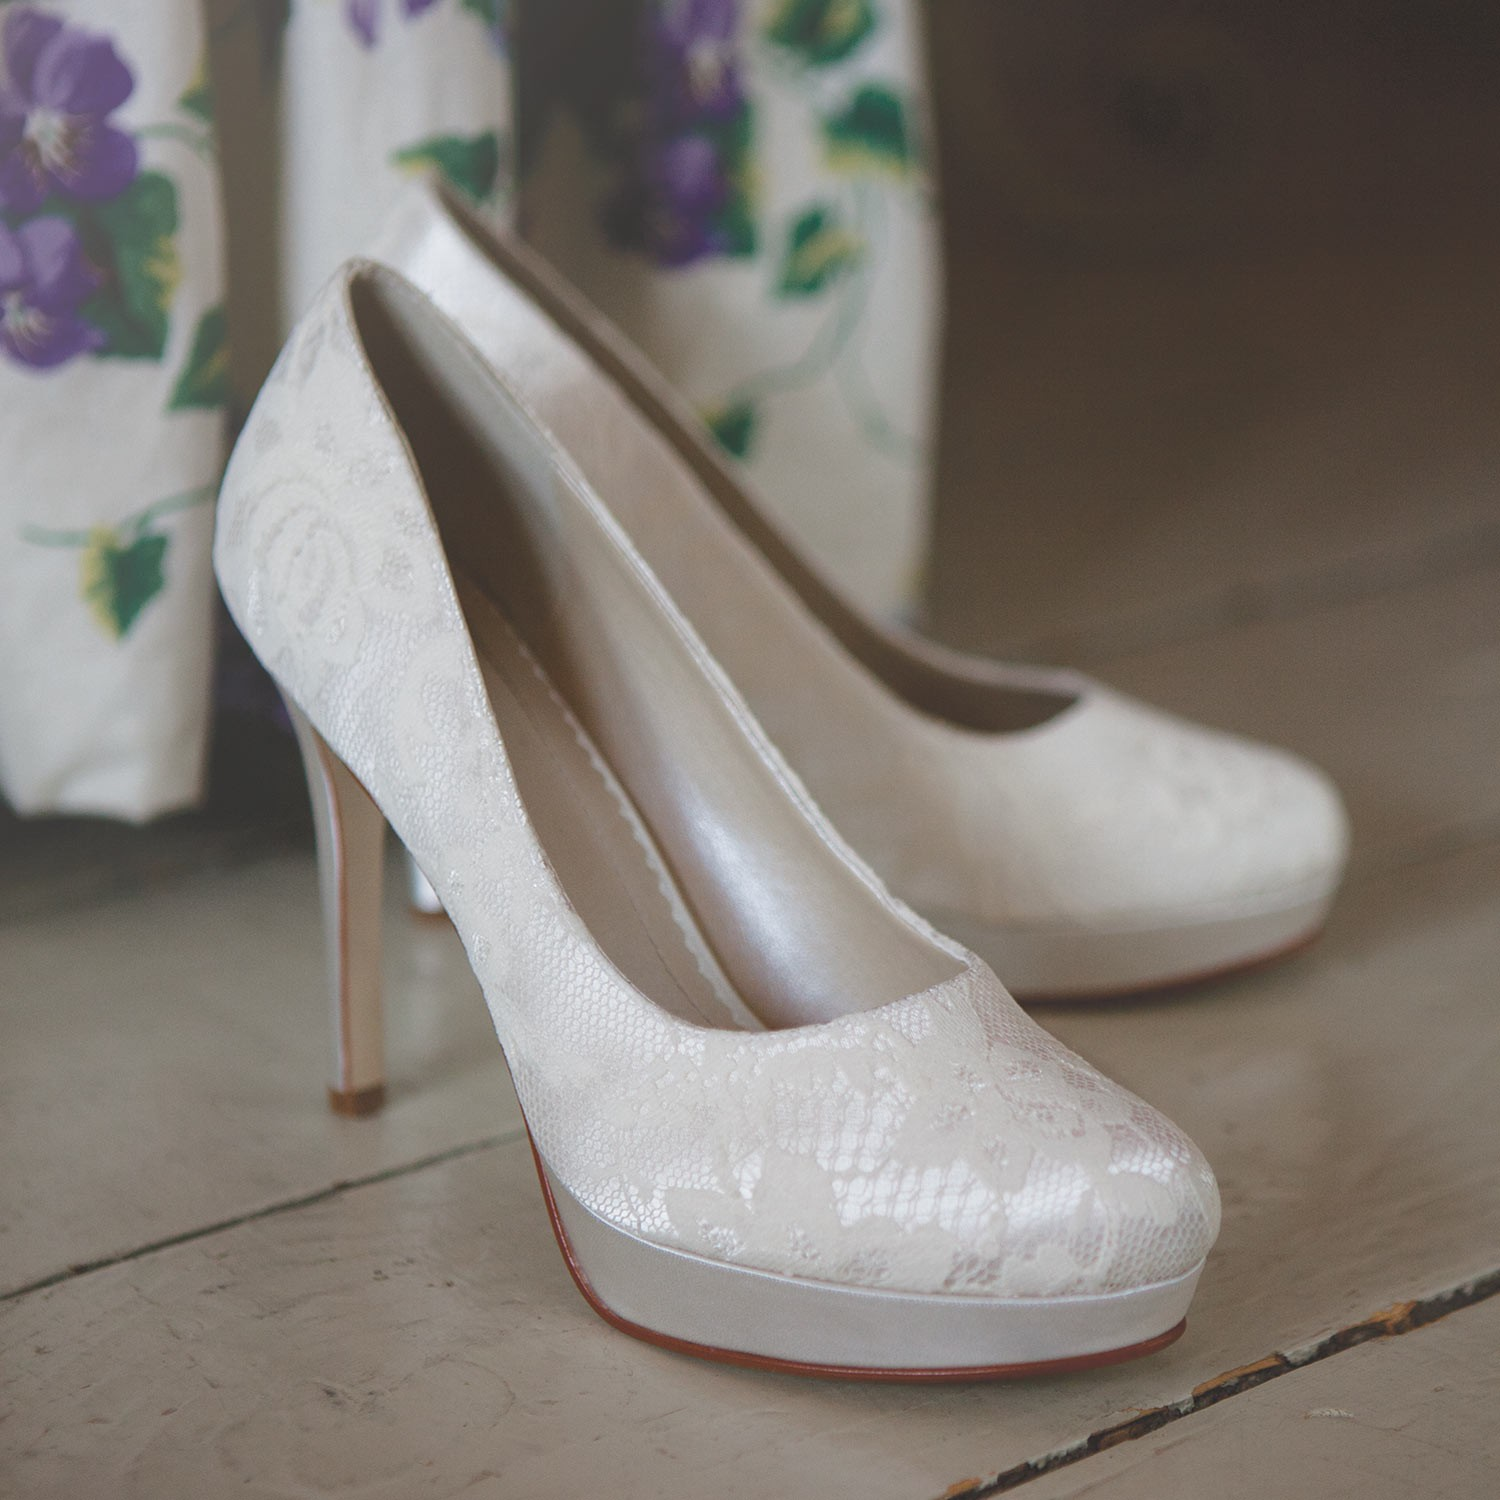 Or chaussures de mariage